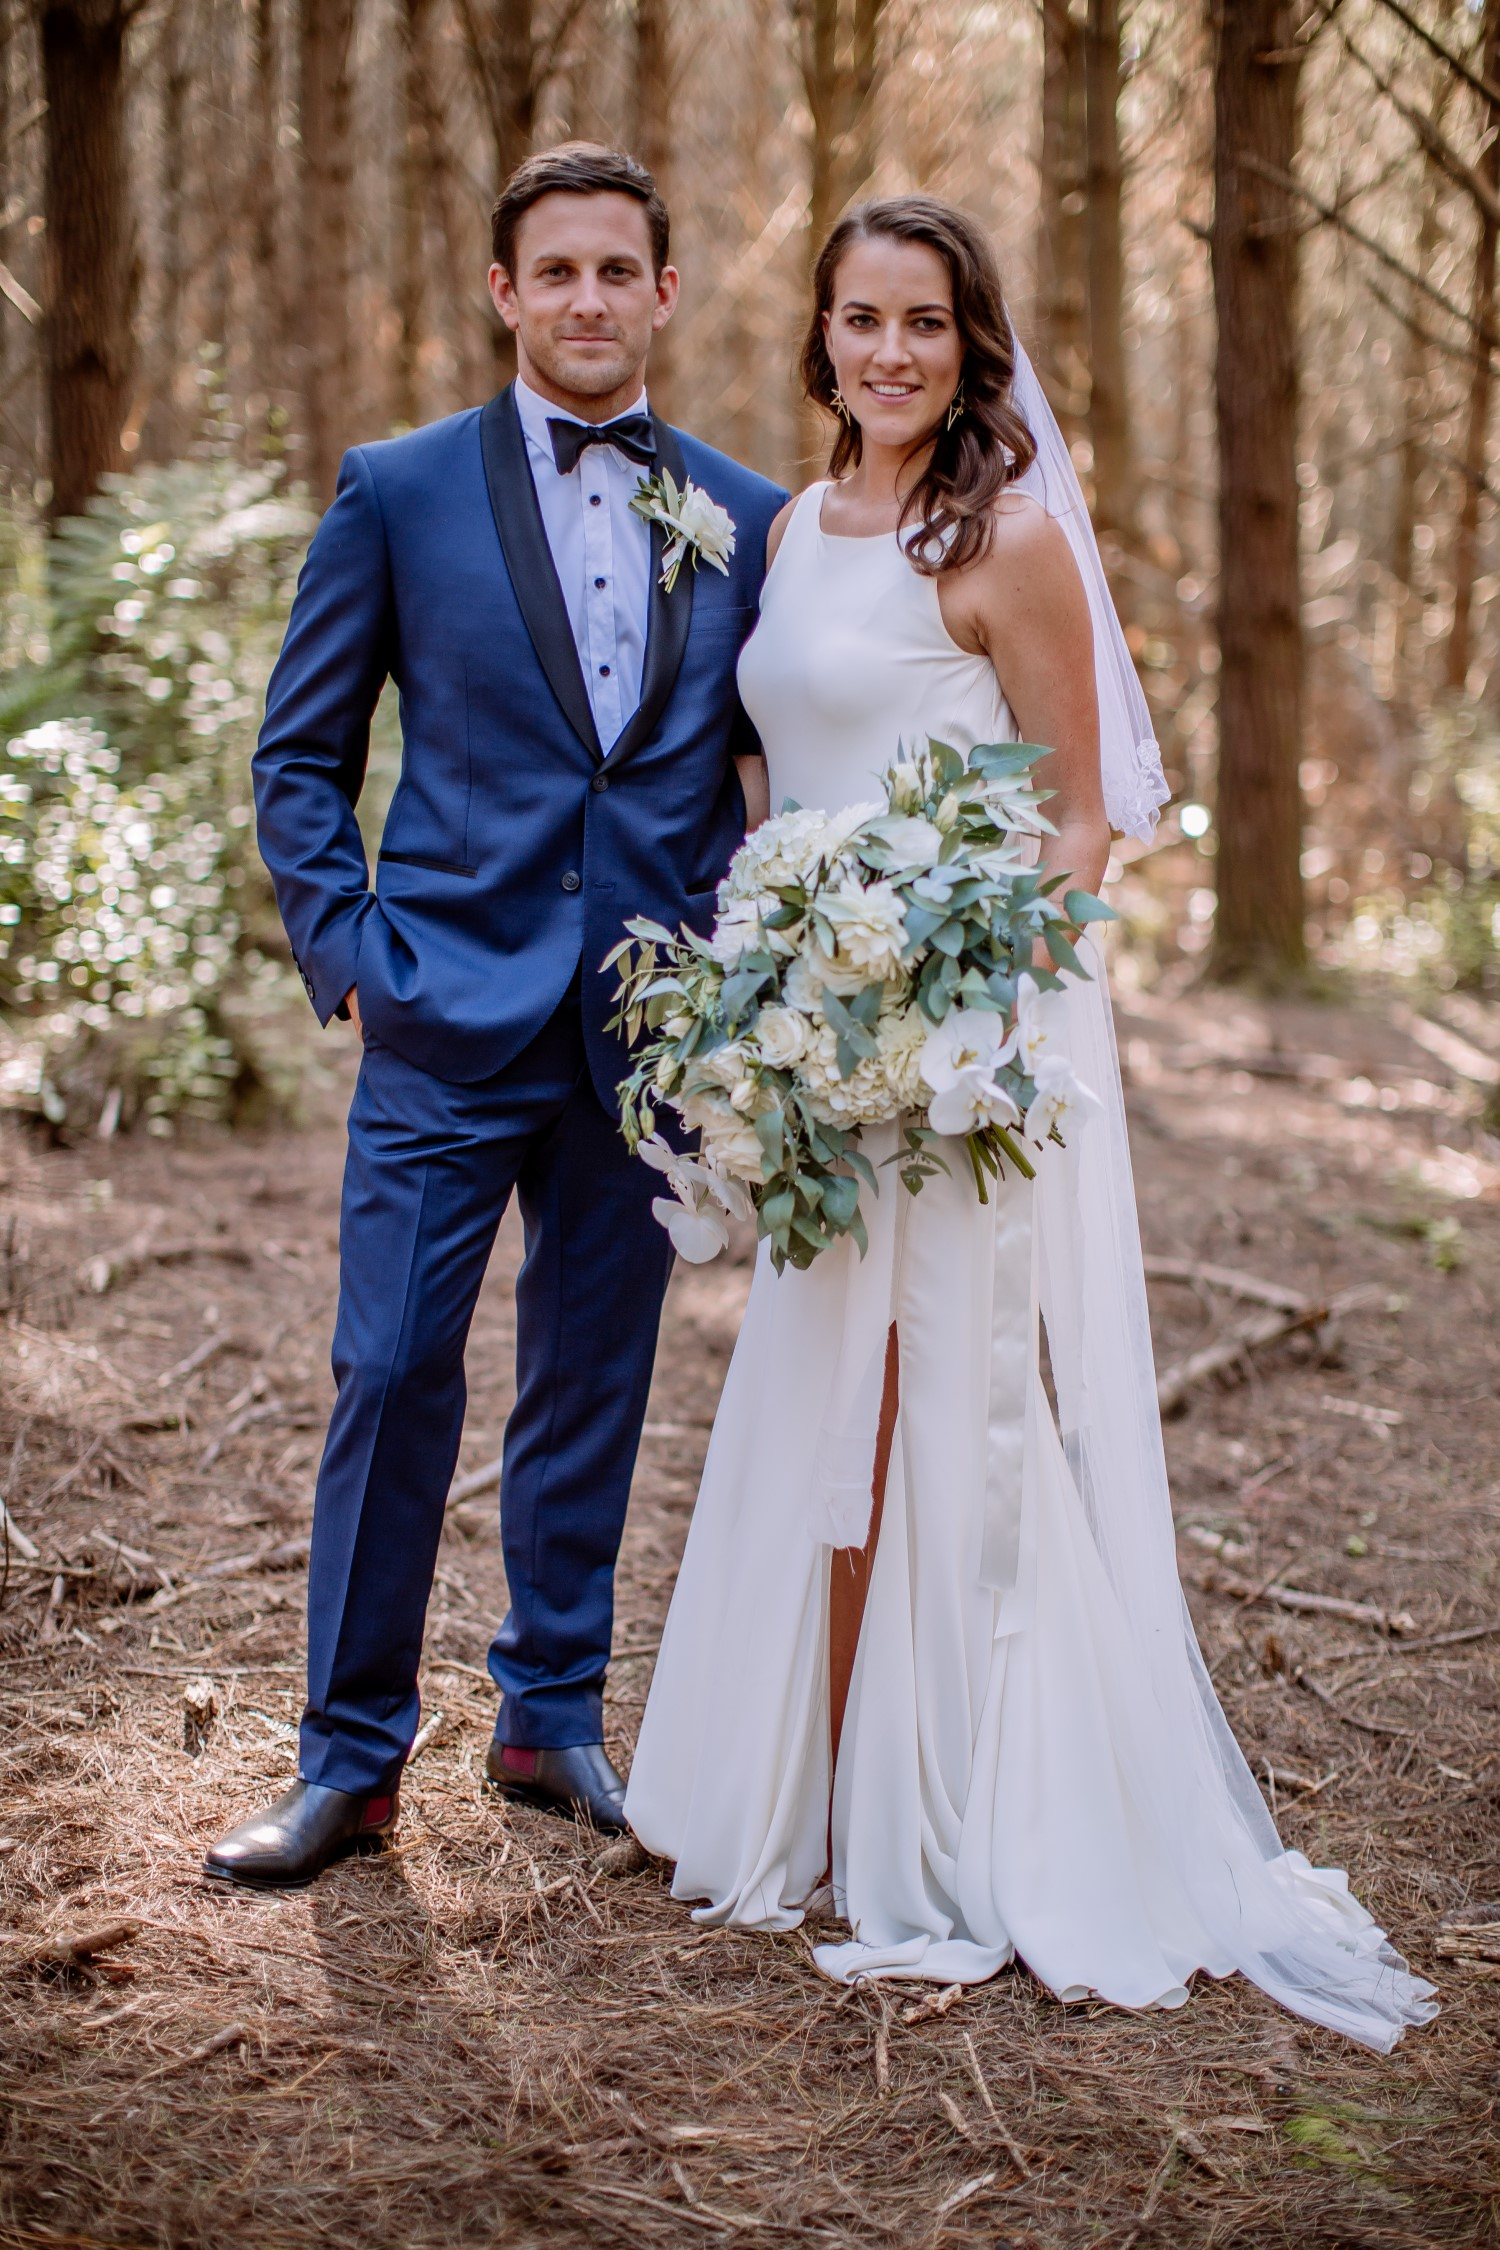 Riverhead Wedding Auckland NZ